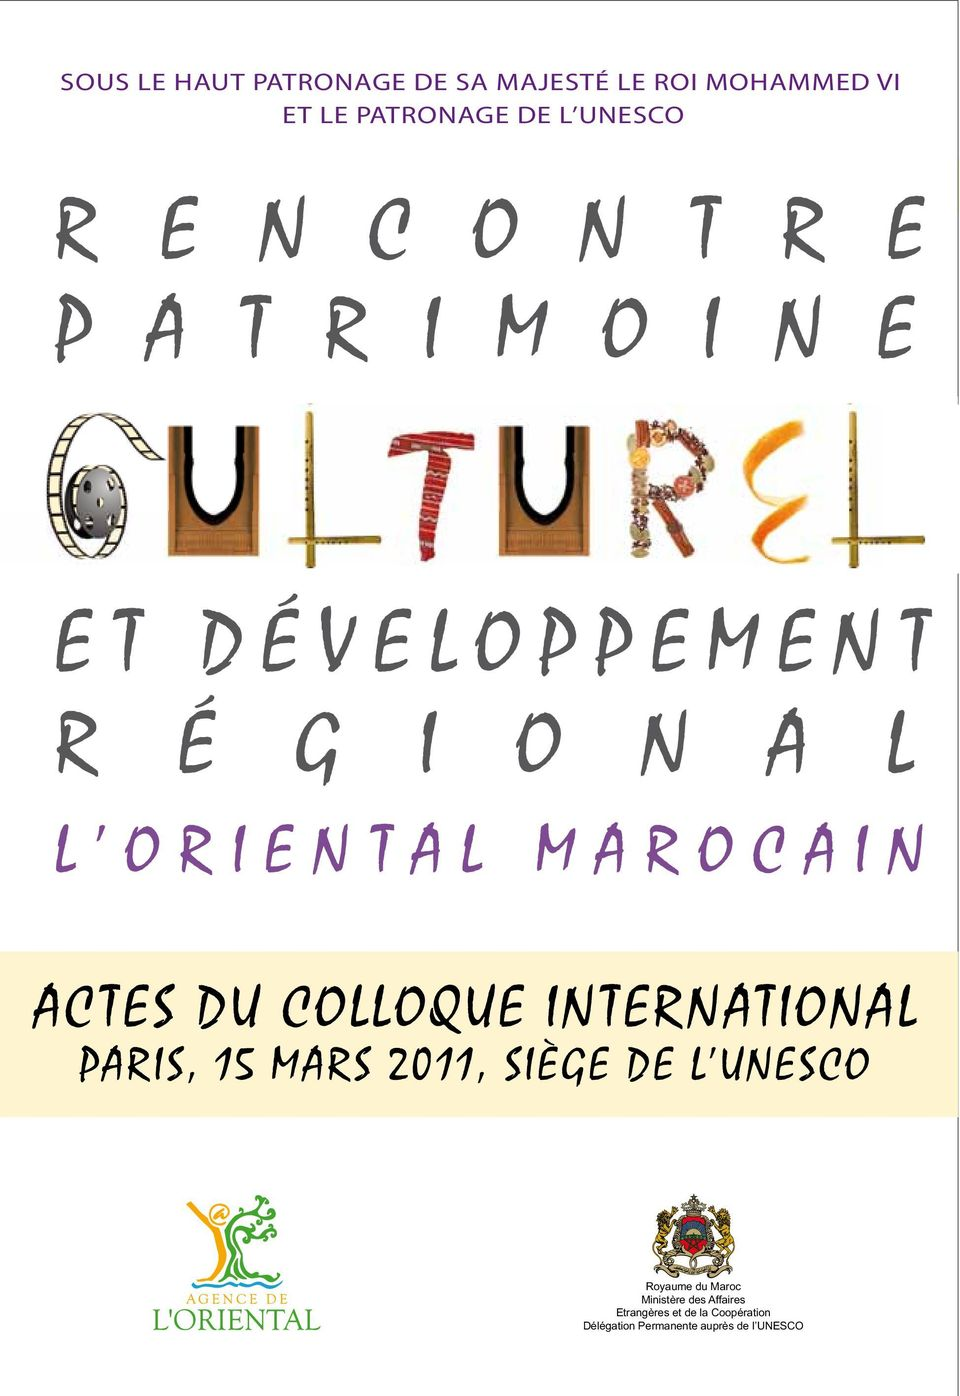 ACTES DU COLLOQUE INTERNATIONAL PARIS, 15 MARS 2011, SIÈGE DE L UNESCO Royaume du Maroc